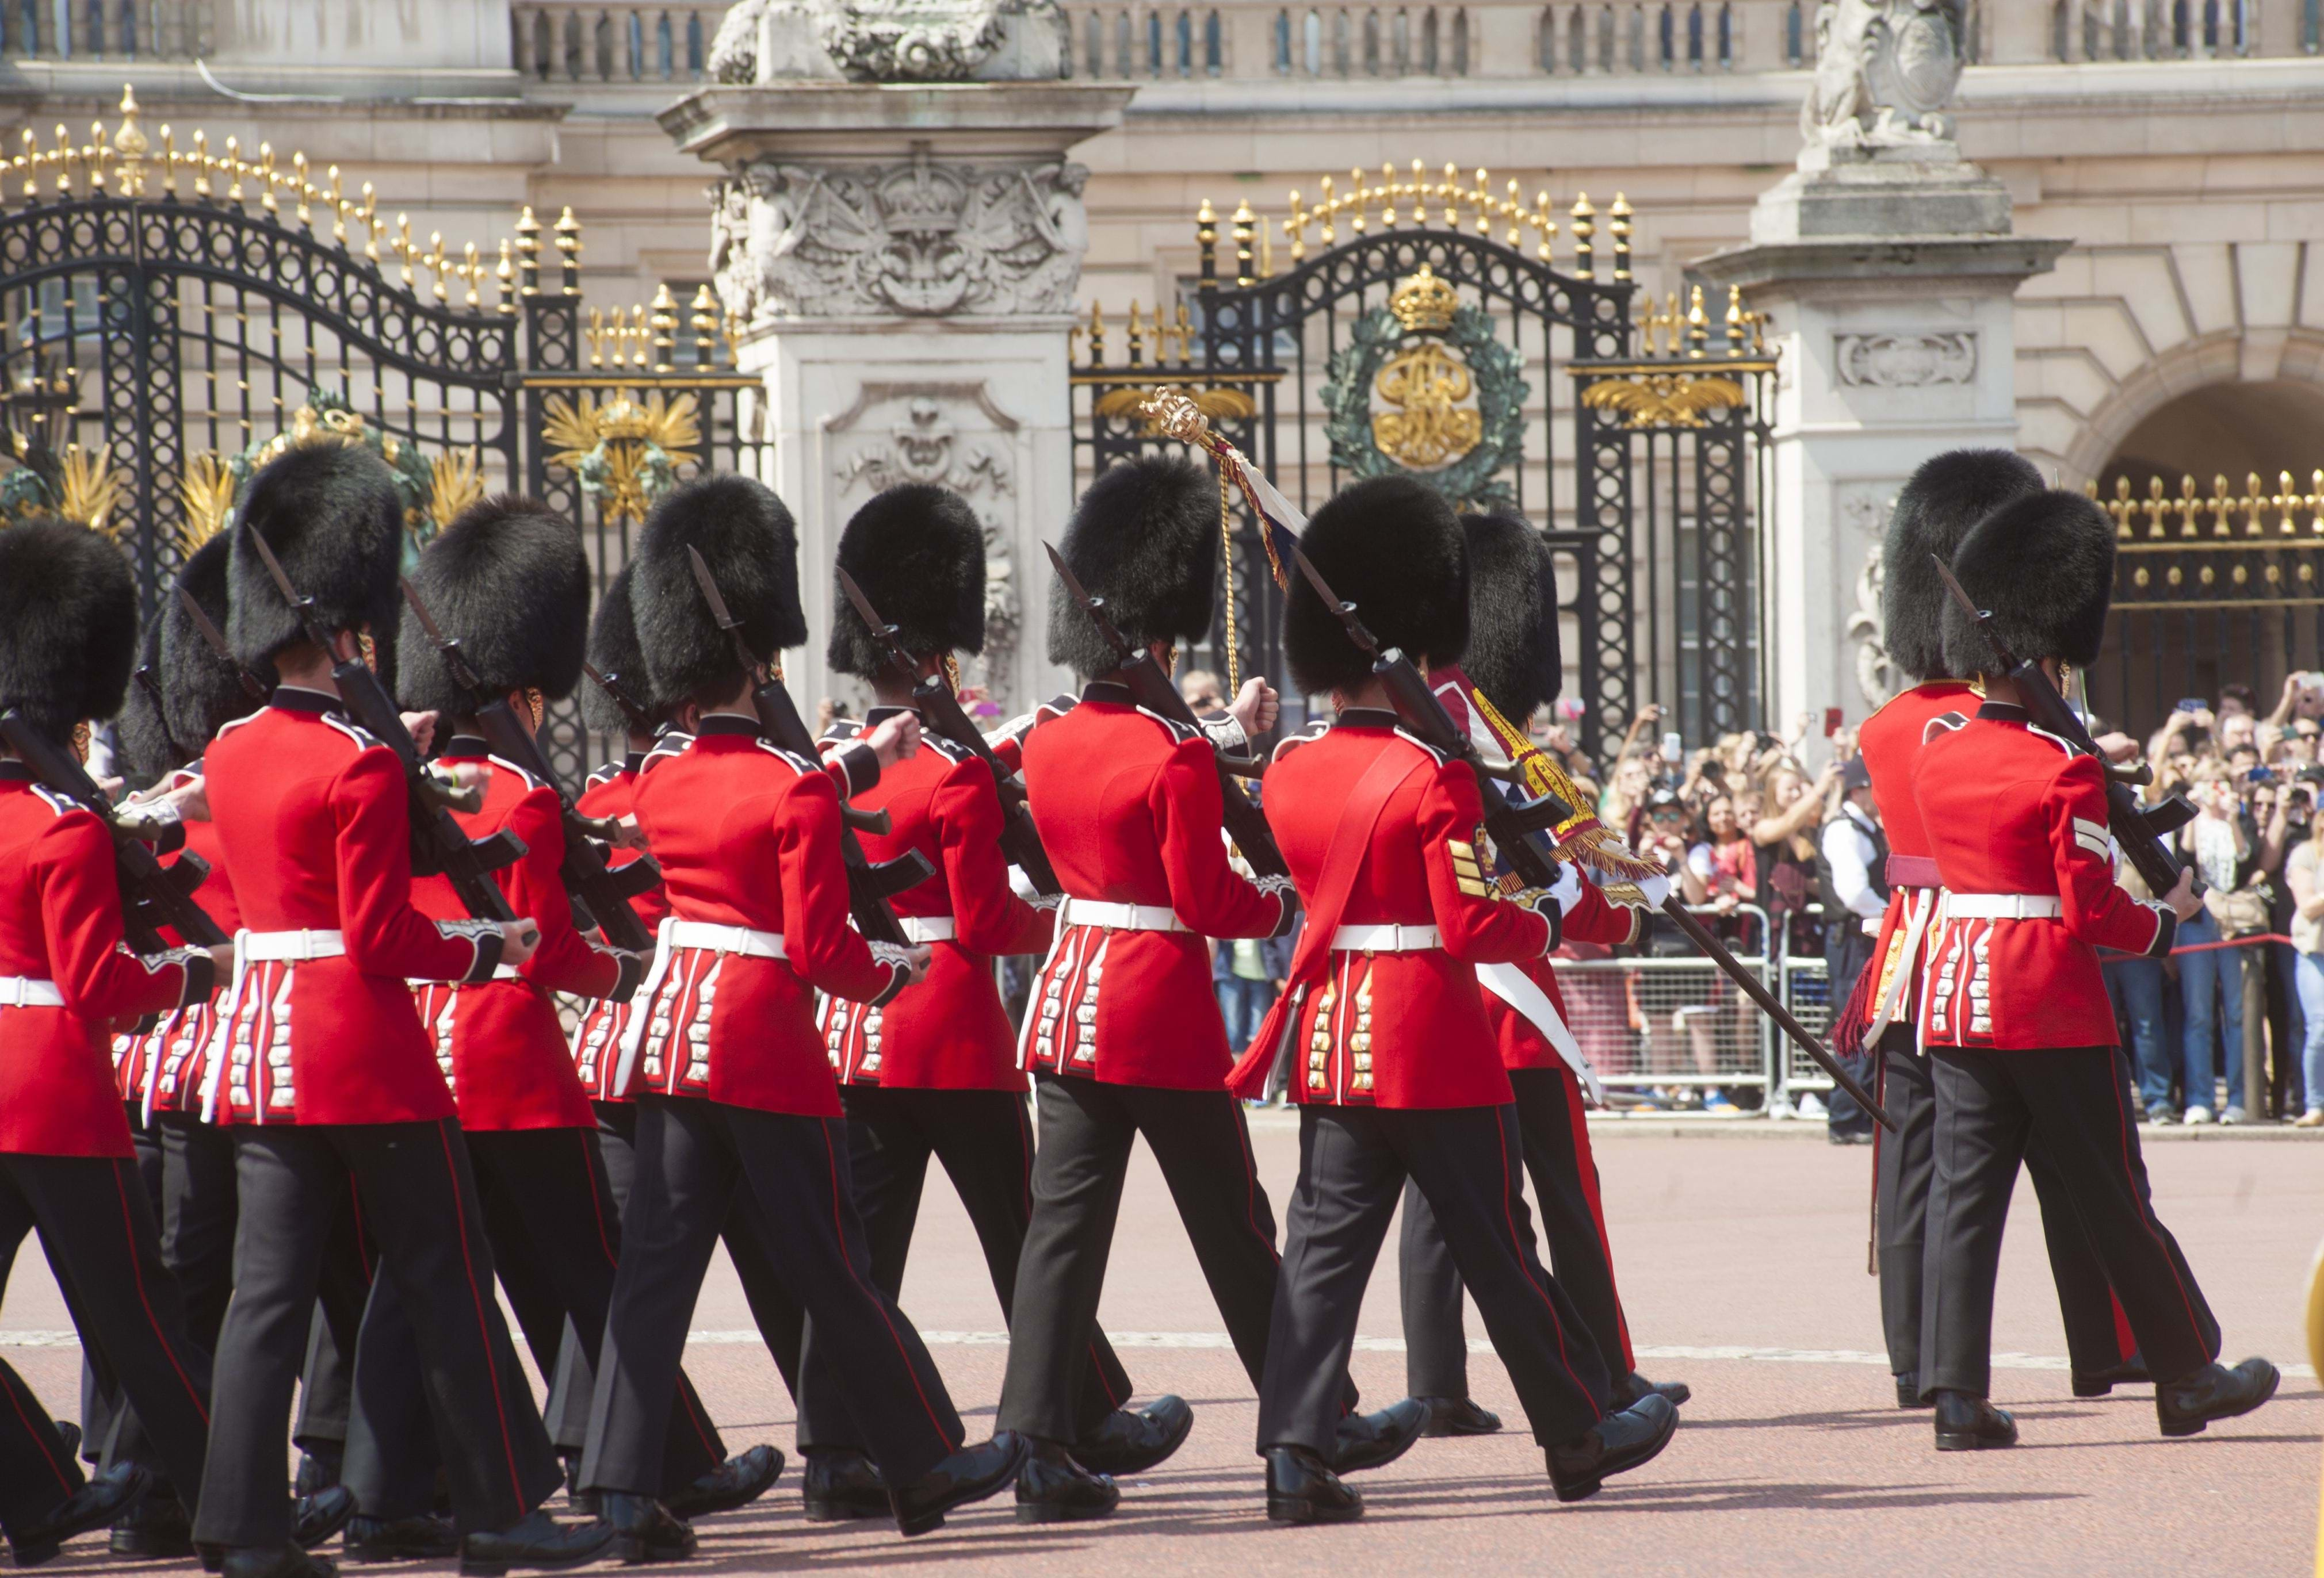 World Travel with Anne |Buckingham Palace Guards Hats